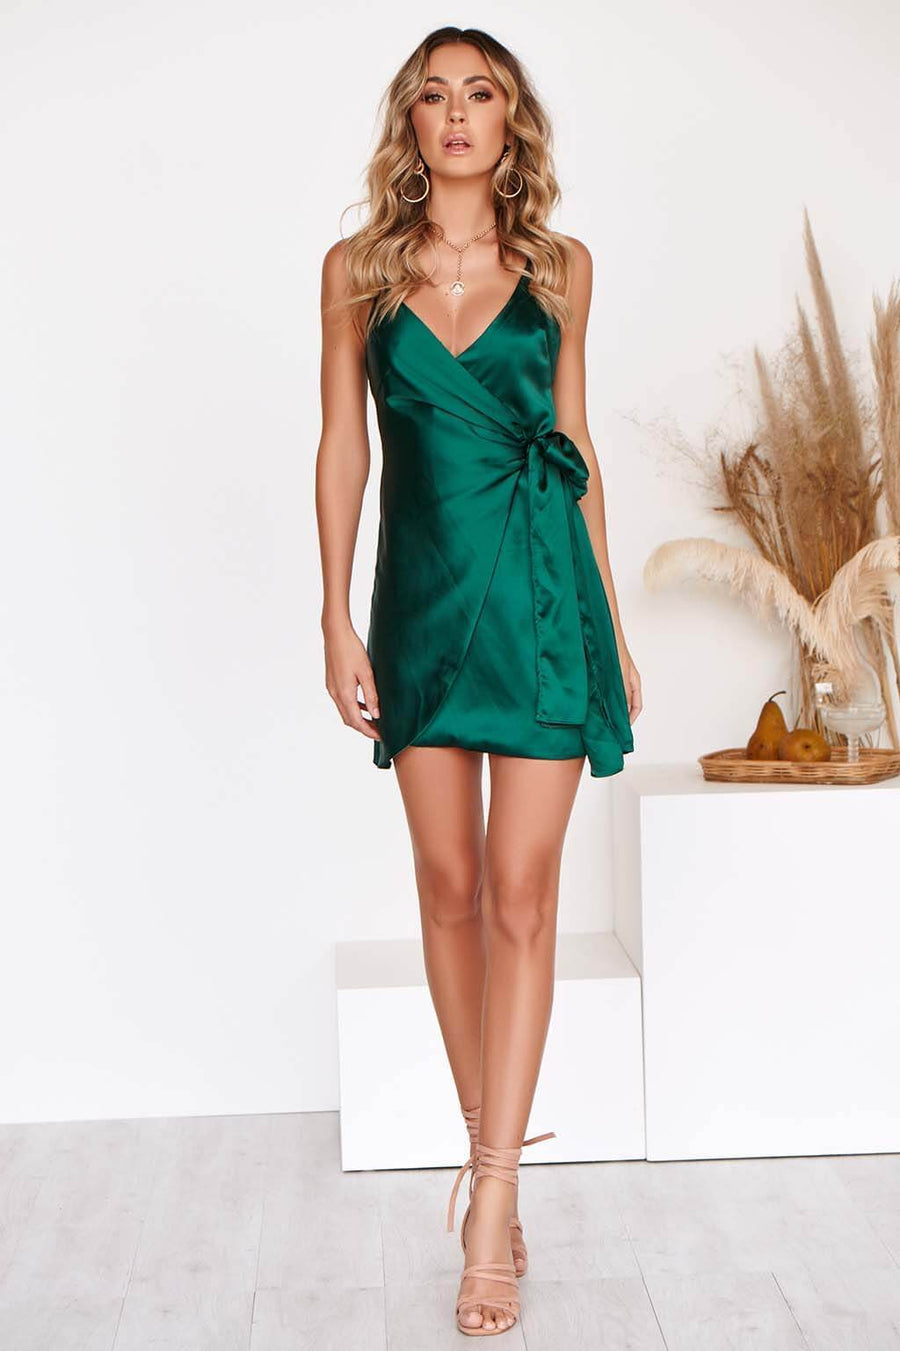 KNOTTED LOVE DRESS IN EMERALD GREEN